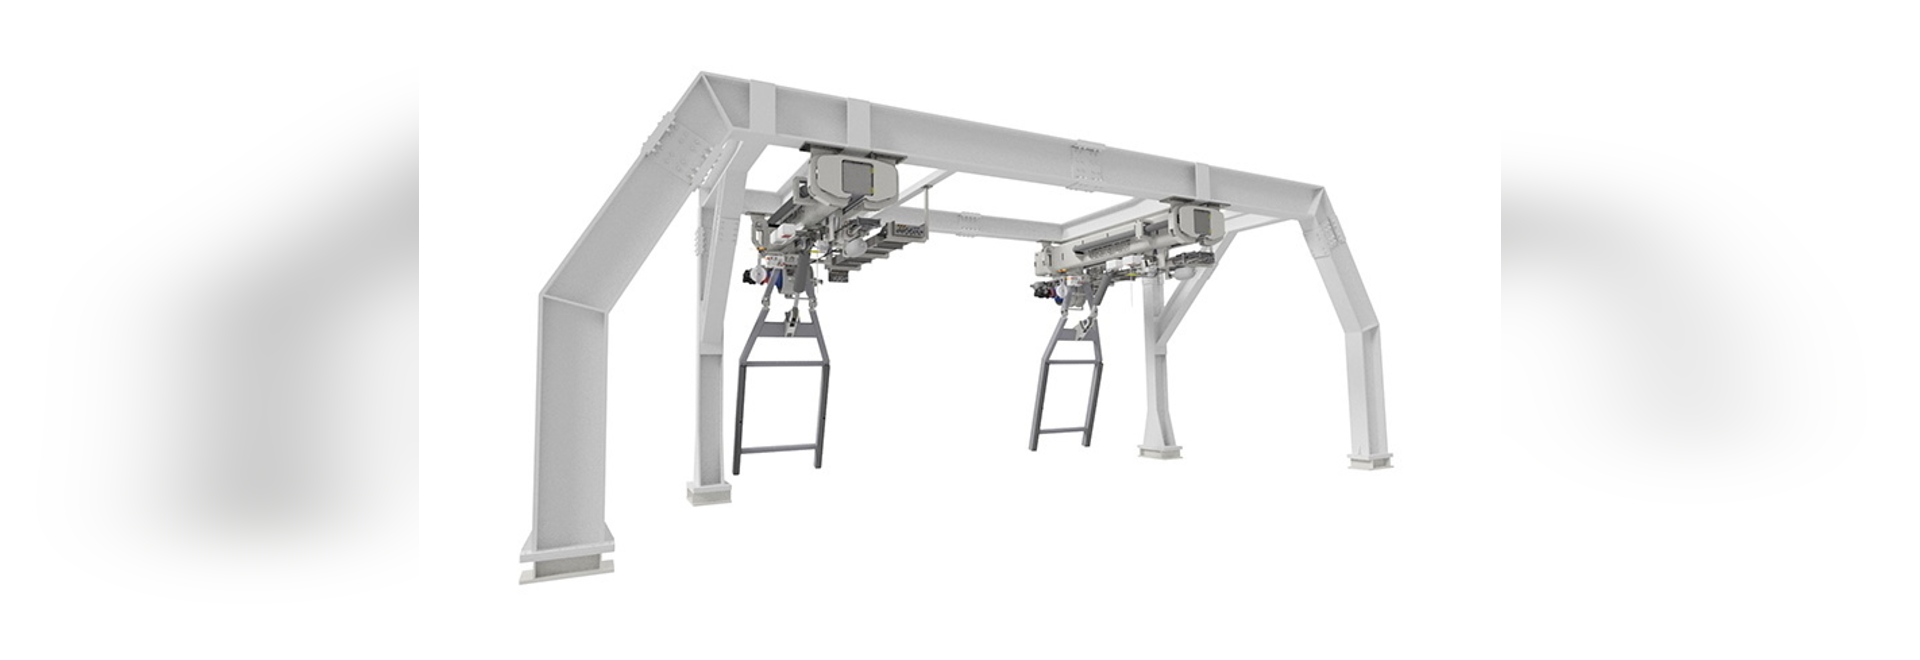 Rendering of the 2TDB-7000 - Vestdavit's most sophisticated dual-point davit system to date